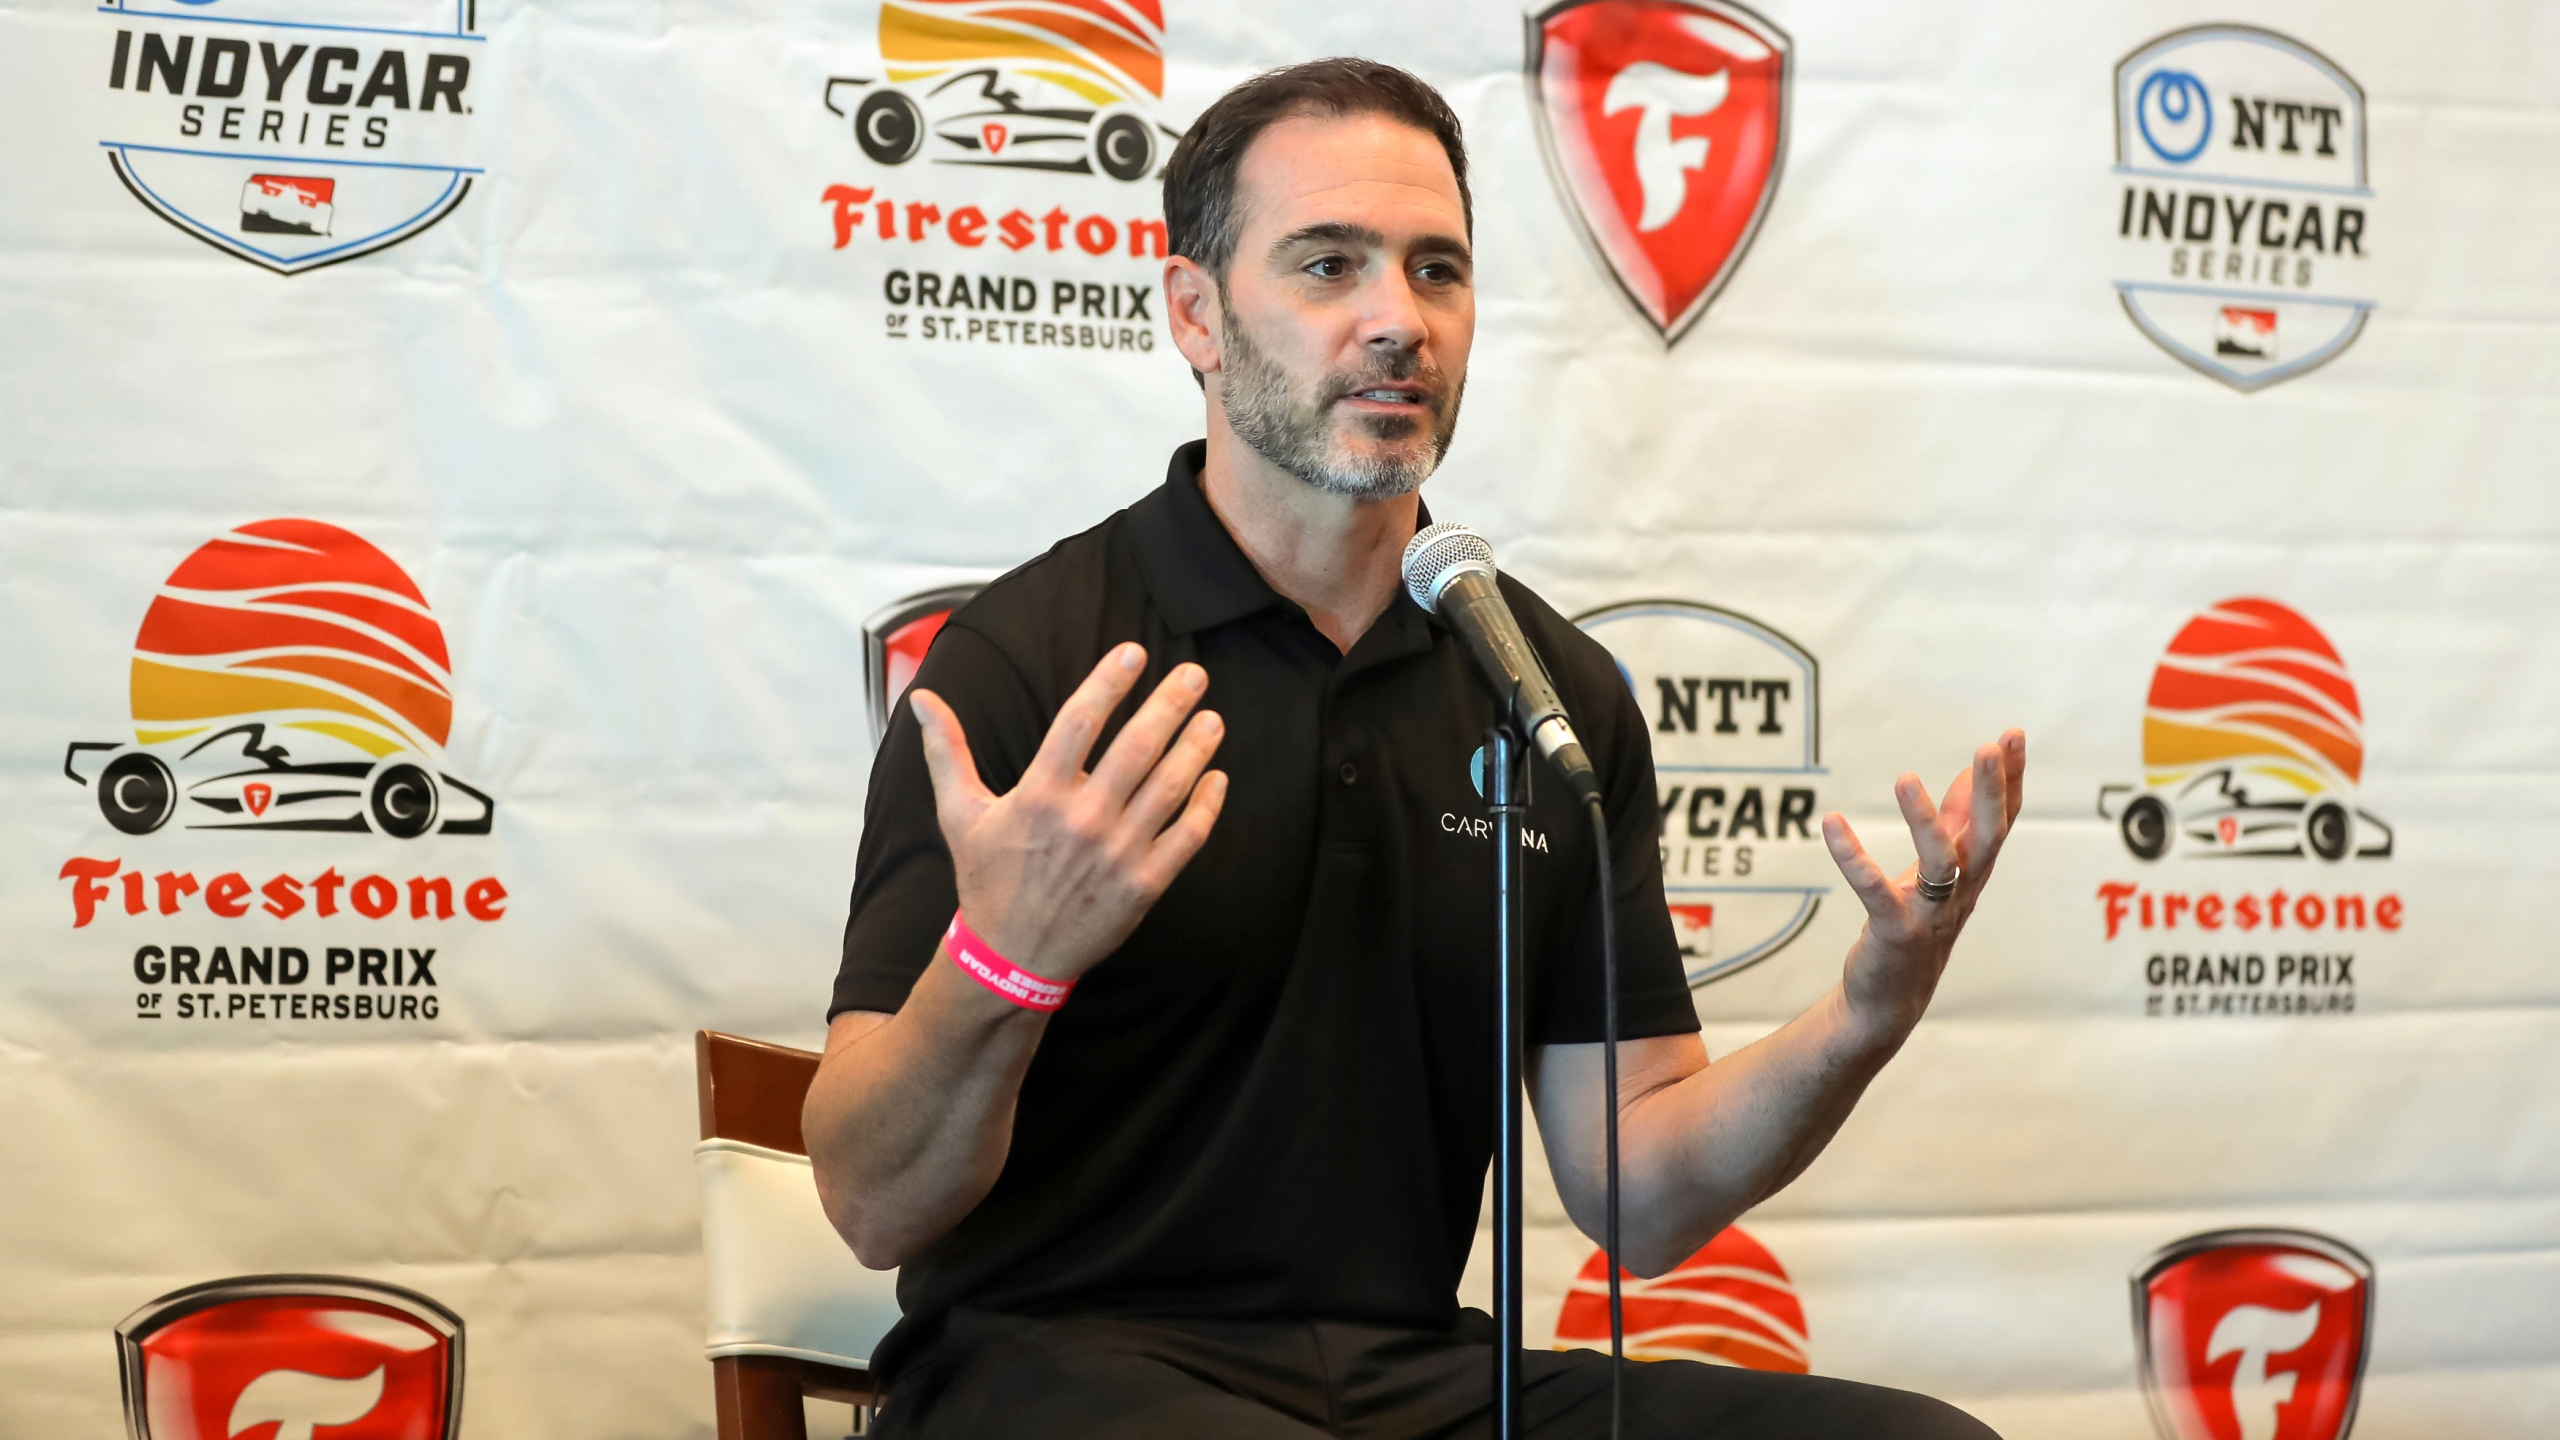 Jimmie Johnson speaks about joining the team of Chip Ganassi for the IndyCar series at a press conference during the IndyCar race weekend Saturday, Oct. 24, 2020, in St. Petersburg, Fla. (AP Photo/Mike Carlson)